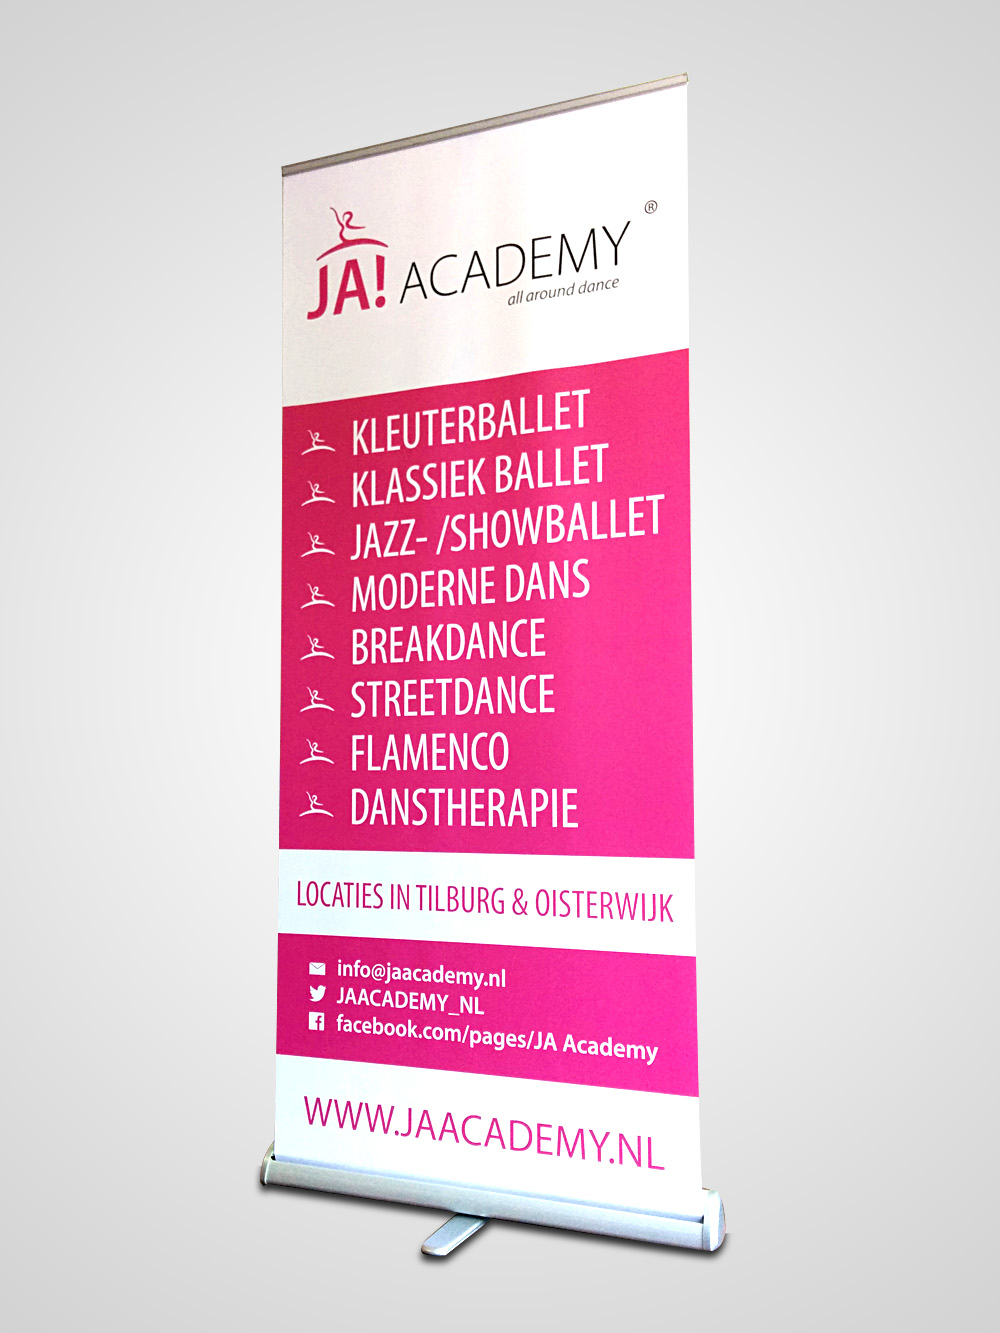 JA!Academy roll-up banner